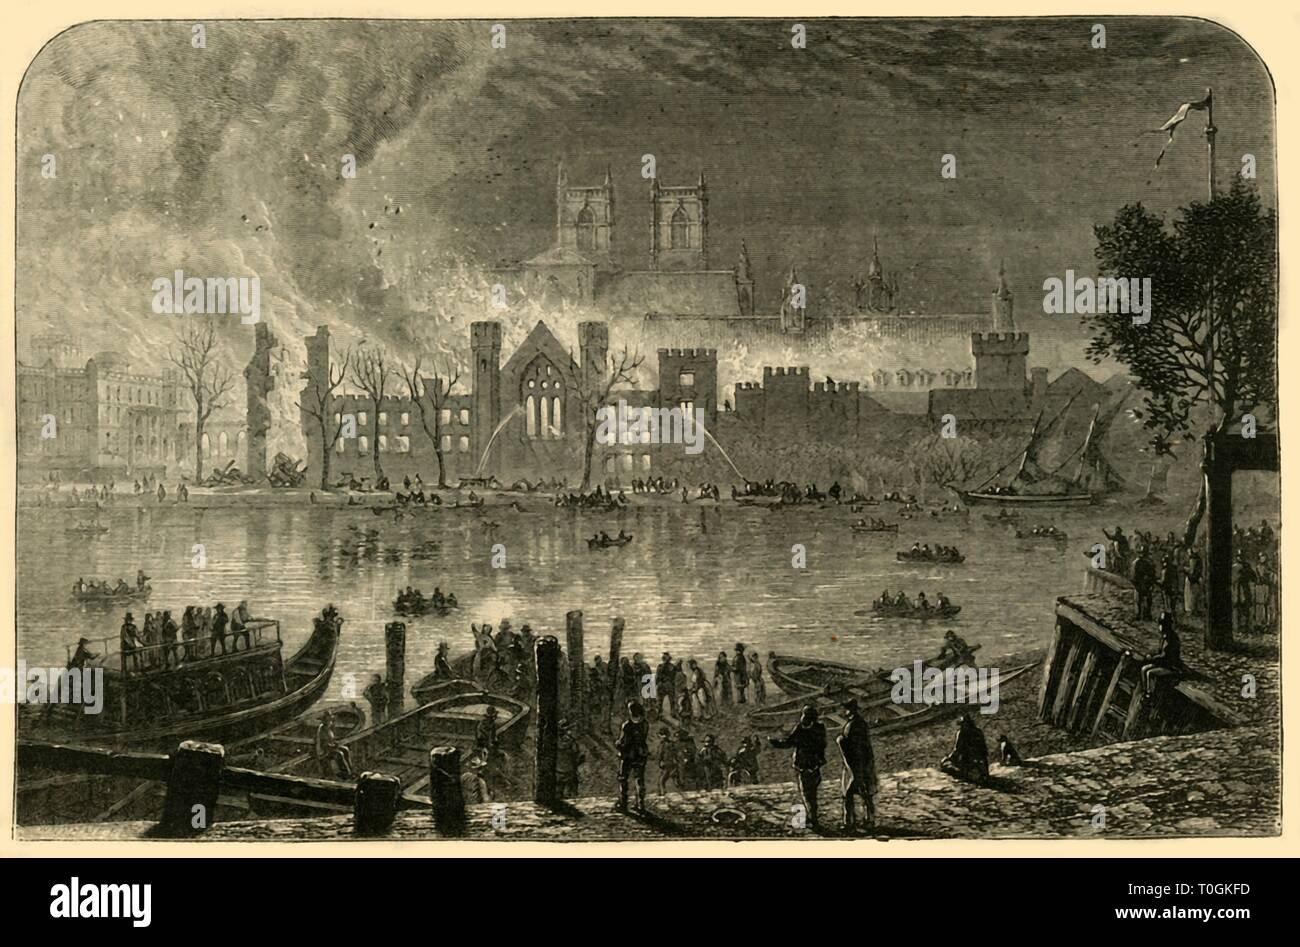 """'Destruction of the Old Houses of Parliament, October 16, 1834', (1881). From """"The Leisure Hour 1881"""", by . [The Religious Tract Society, London, 1881] - Stock Image"""